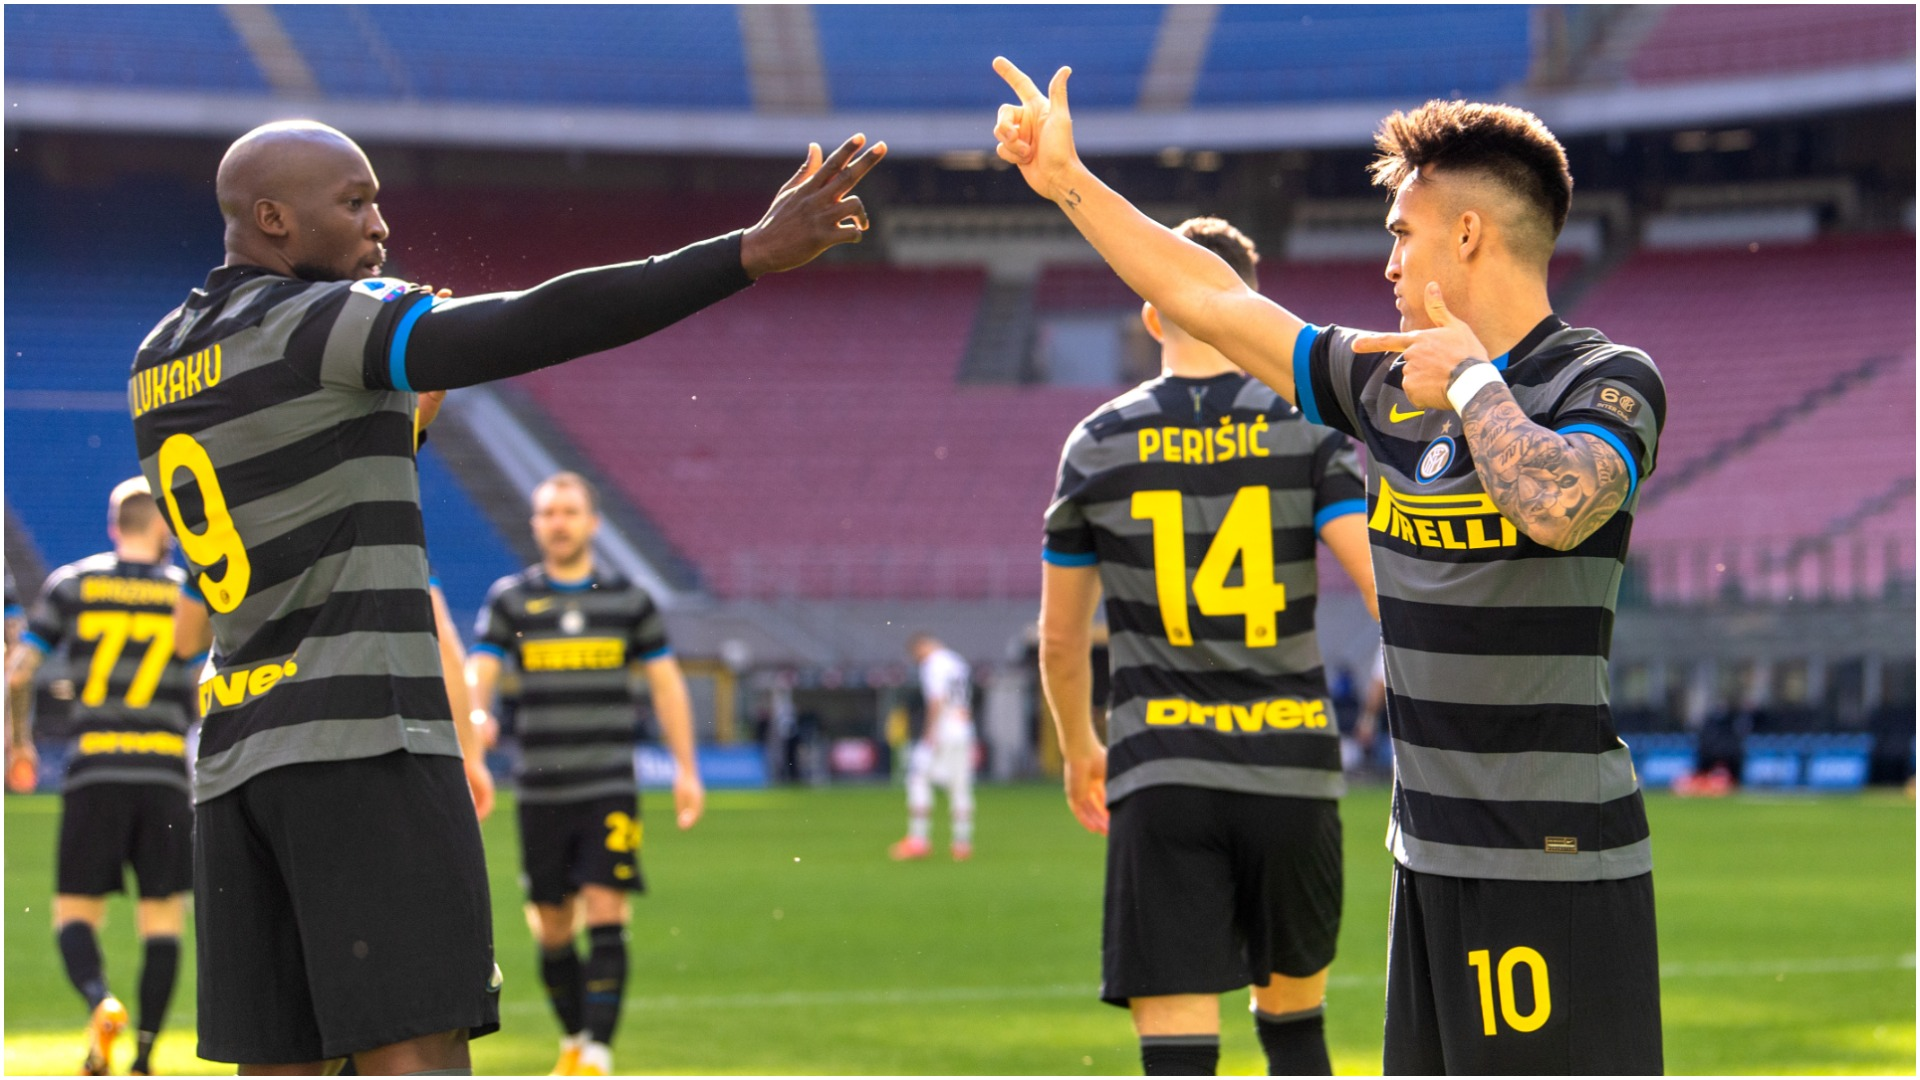 Romelu Lukaku scored after just 32 seconds as leaders Inter registered a fifth consecutive Serie A win against Genoa.